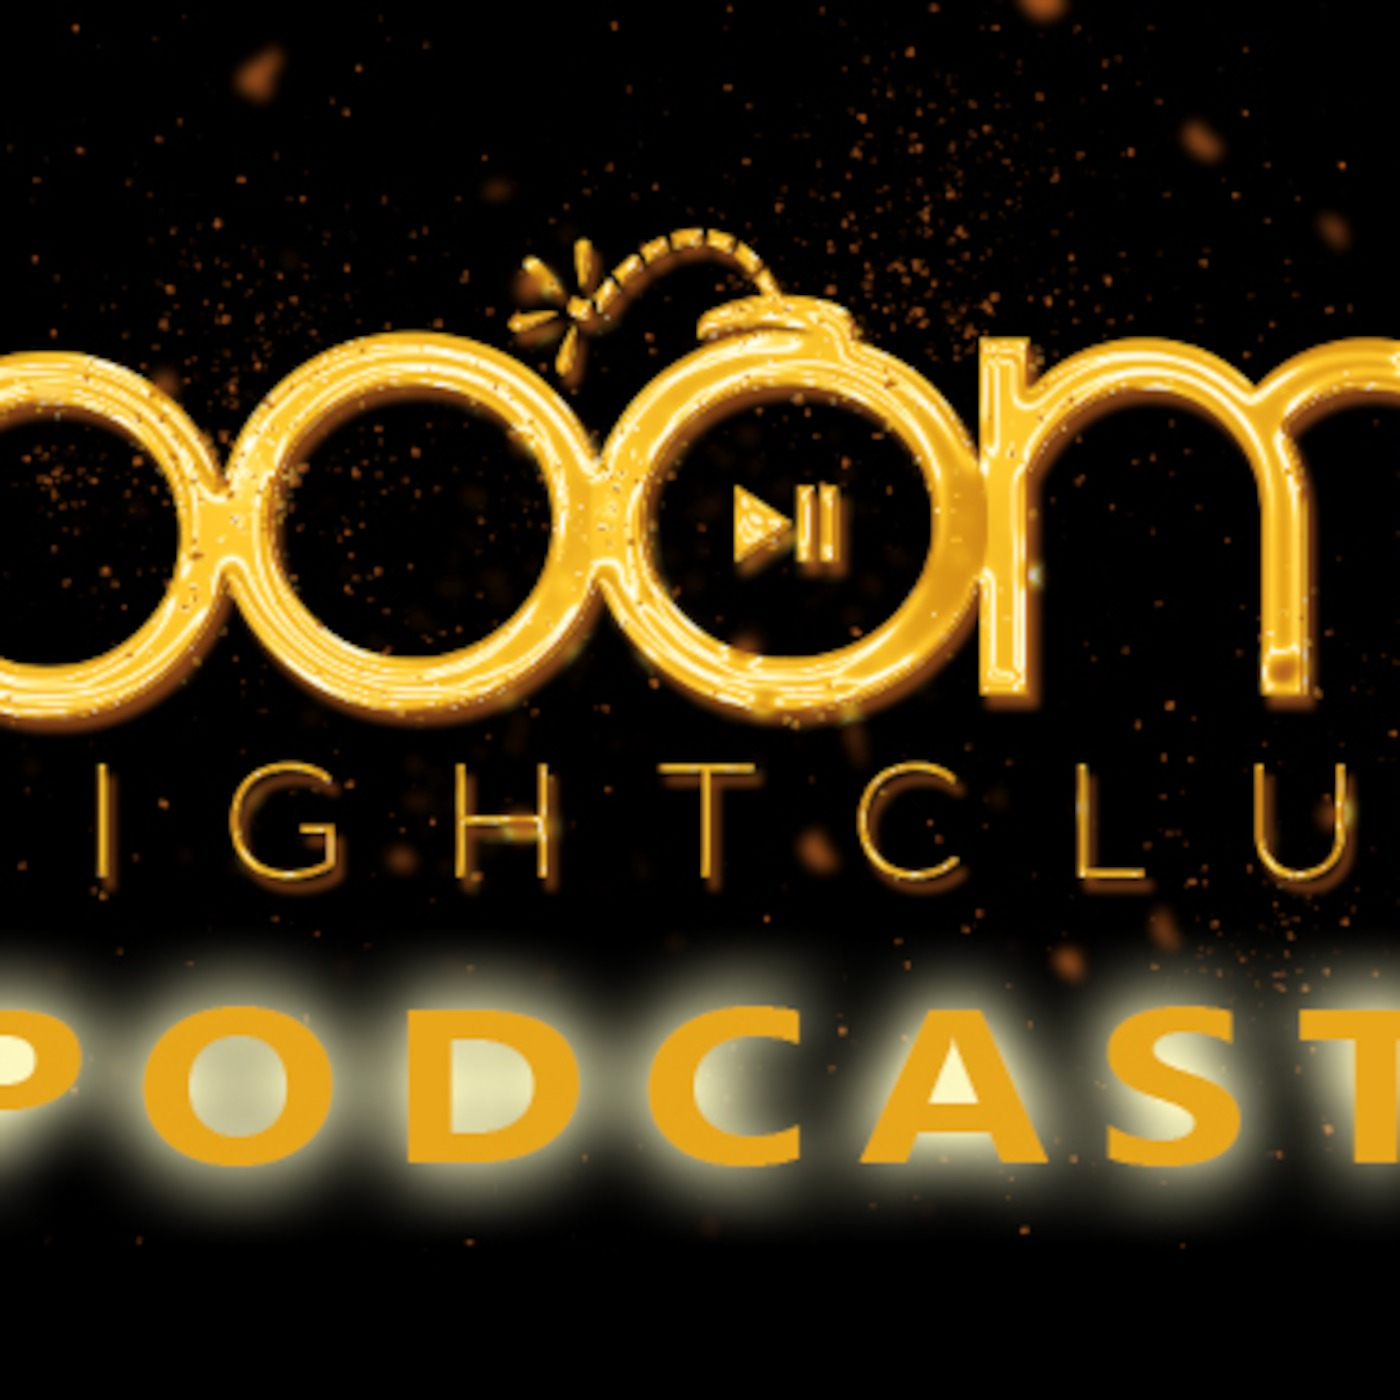 Boom nightclub Podcast